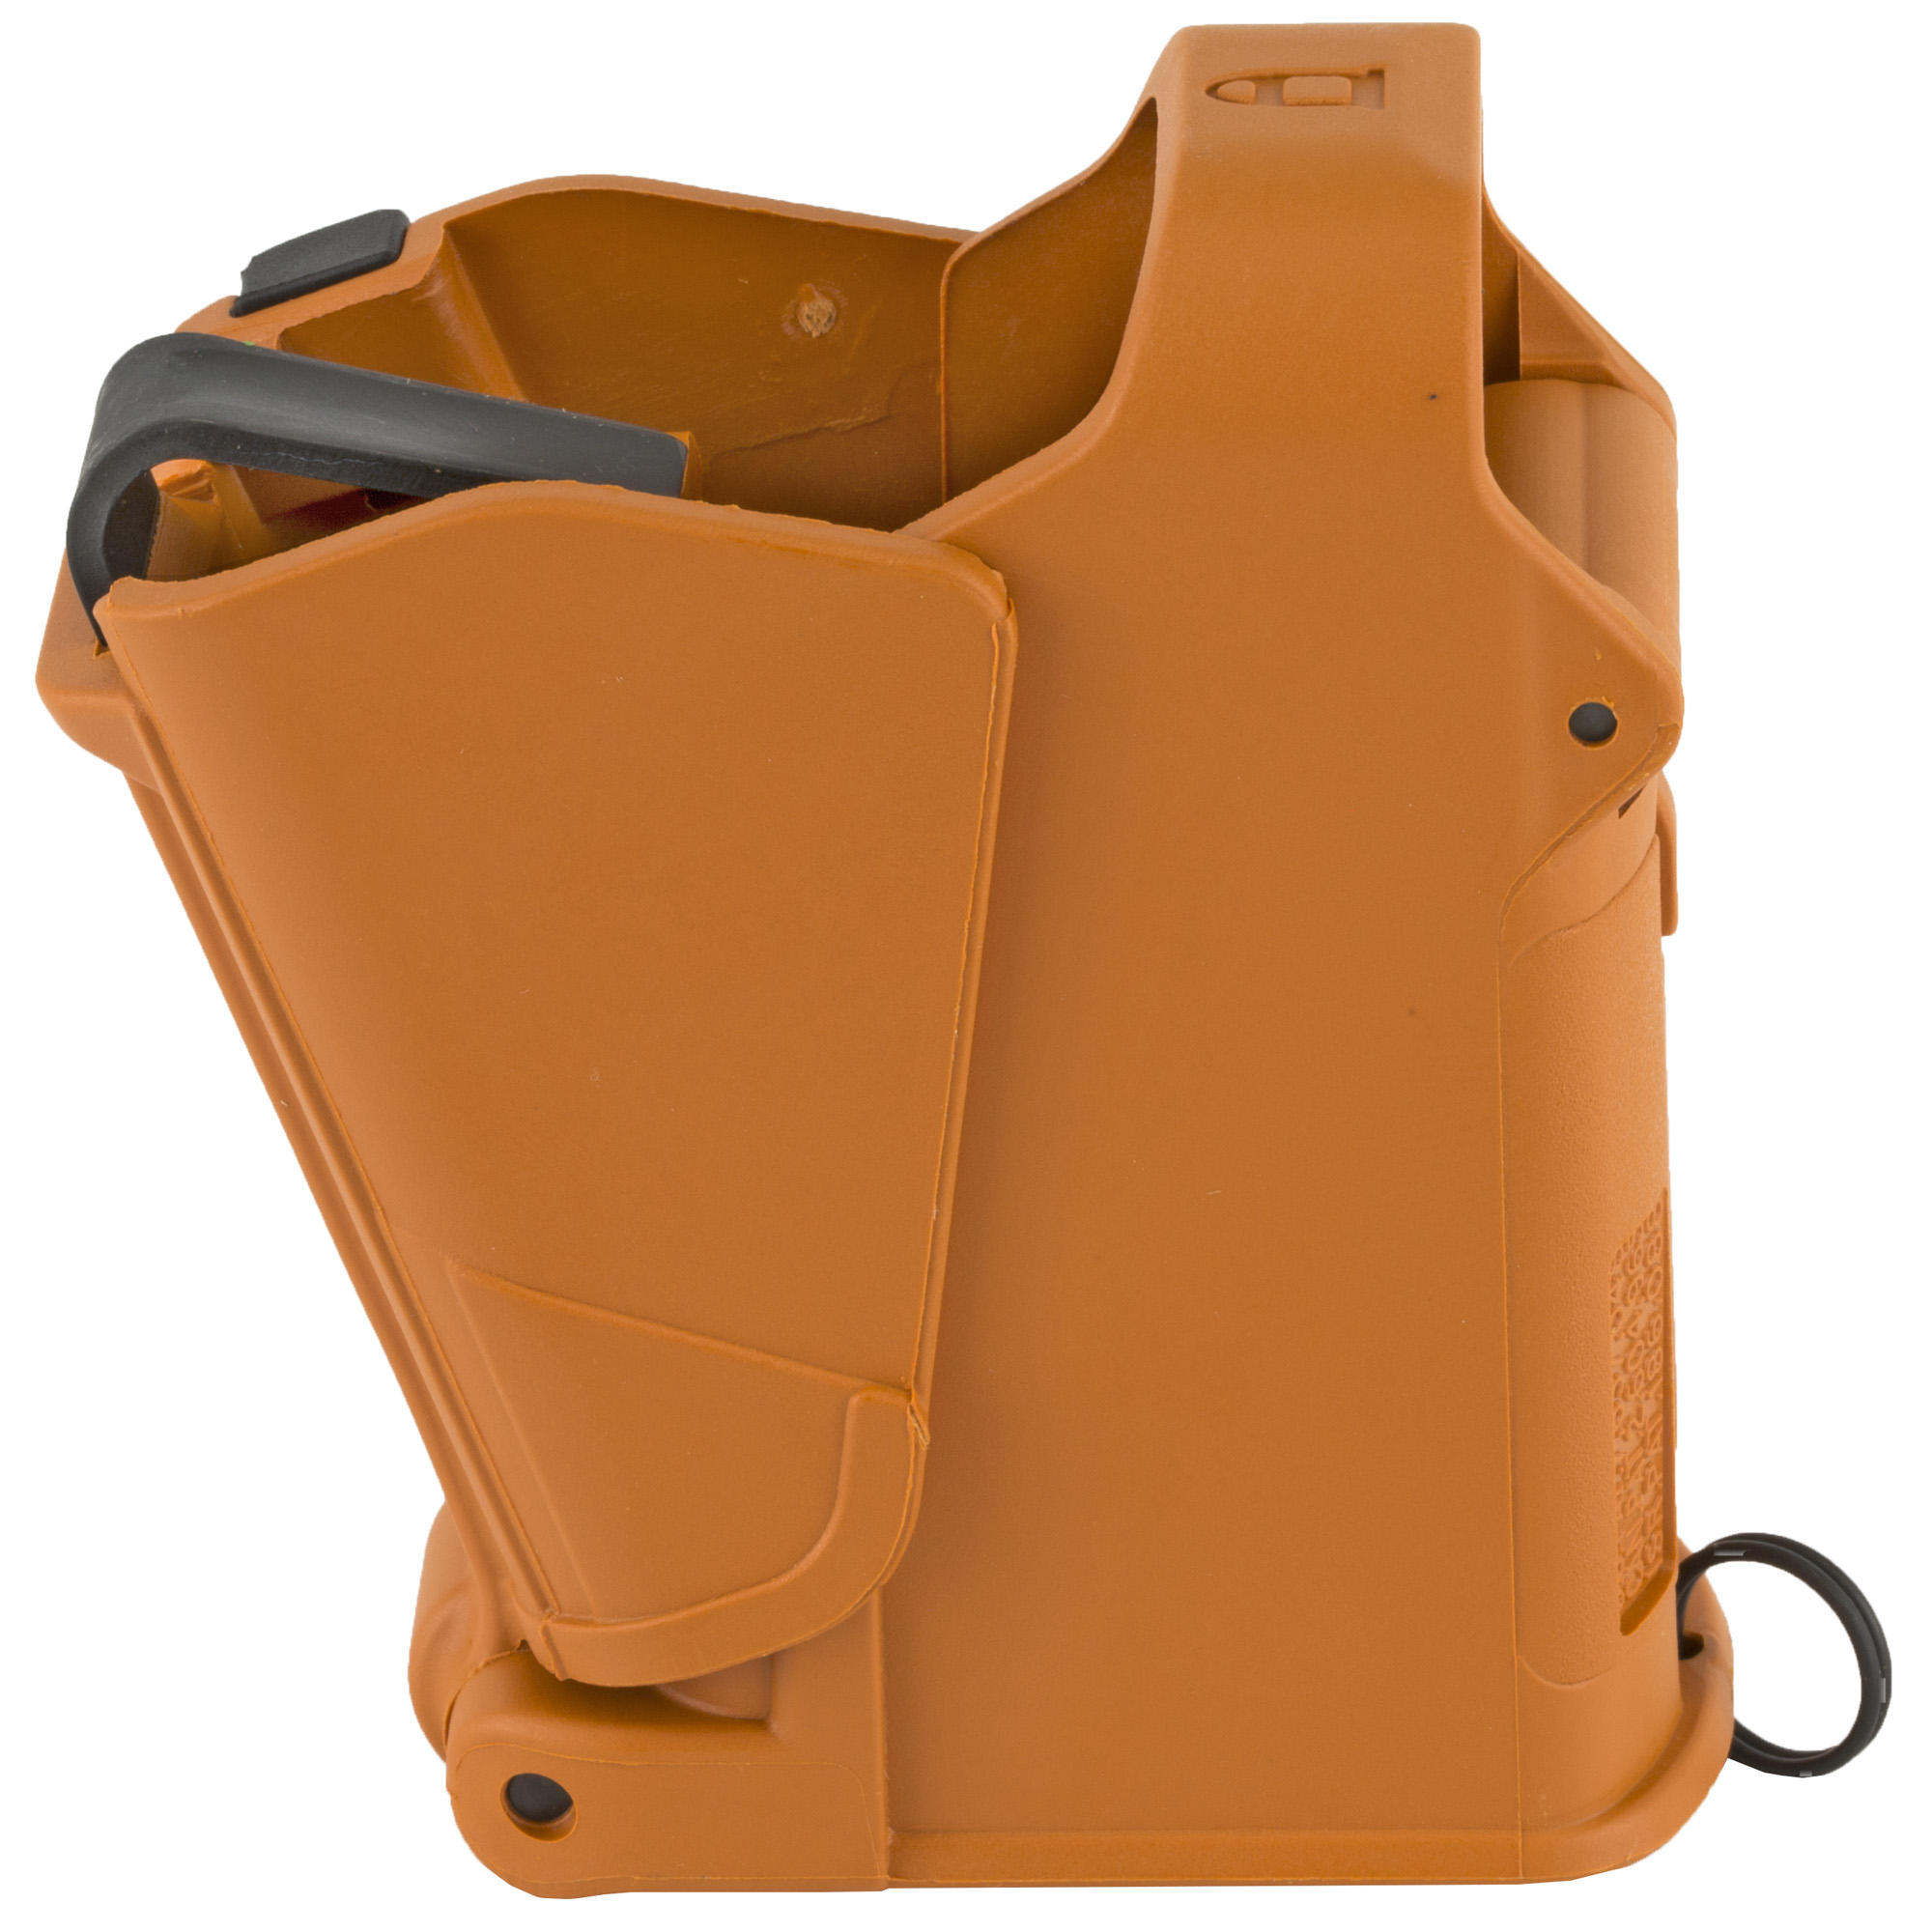 UpLula Magazine Speedloader, Orange - UNIVERSAL PISTOL